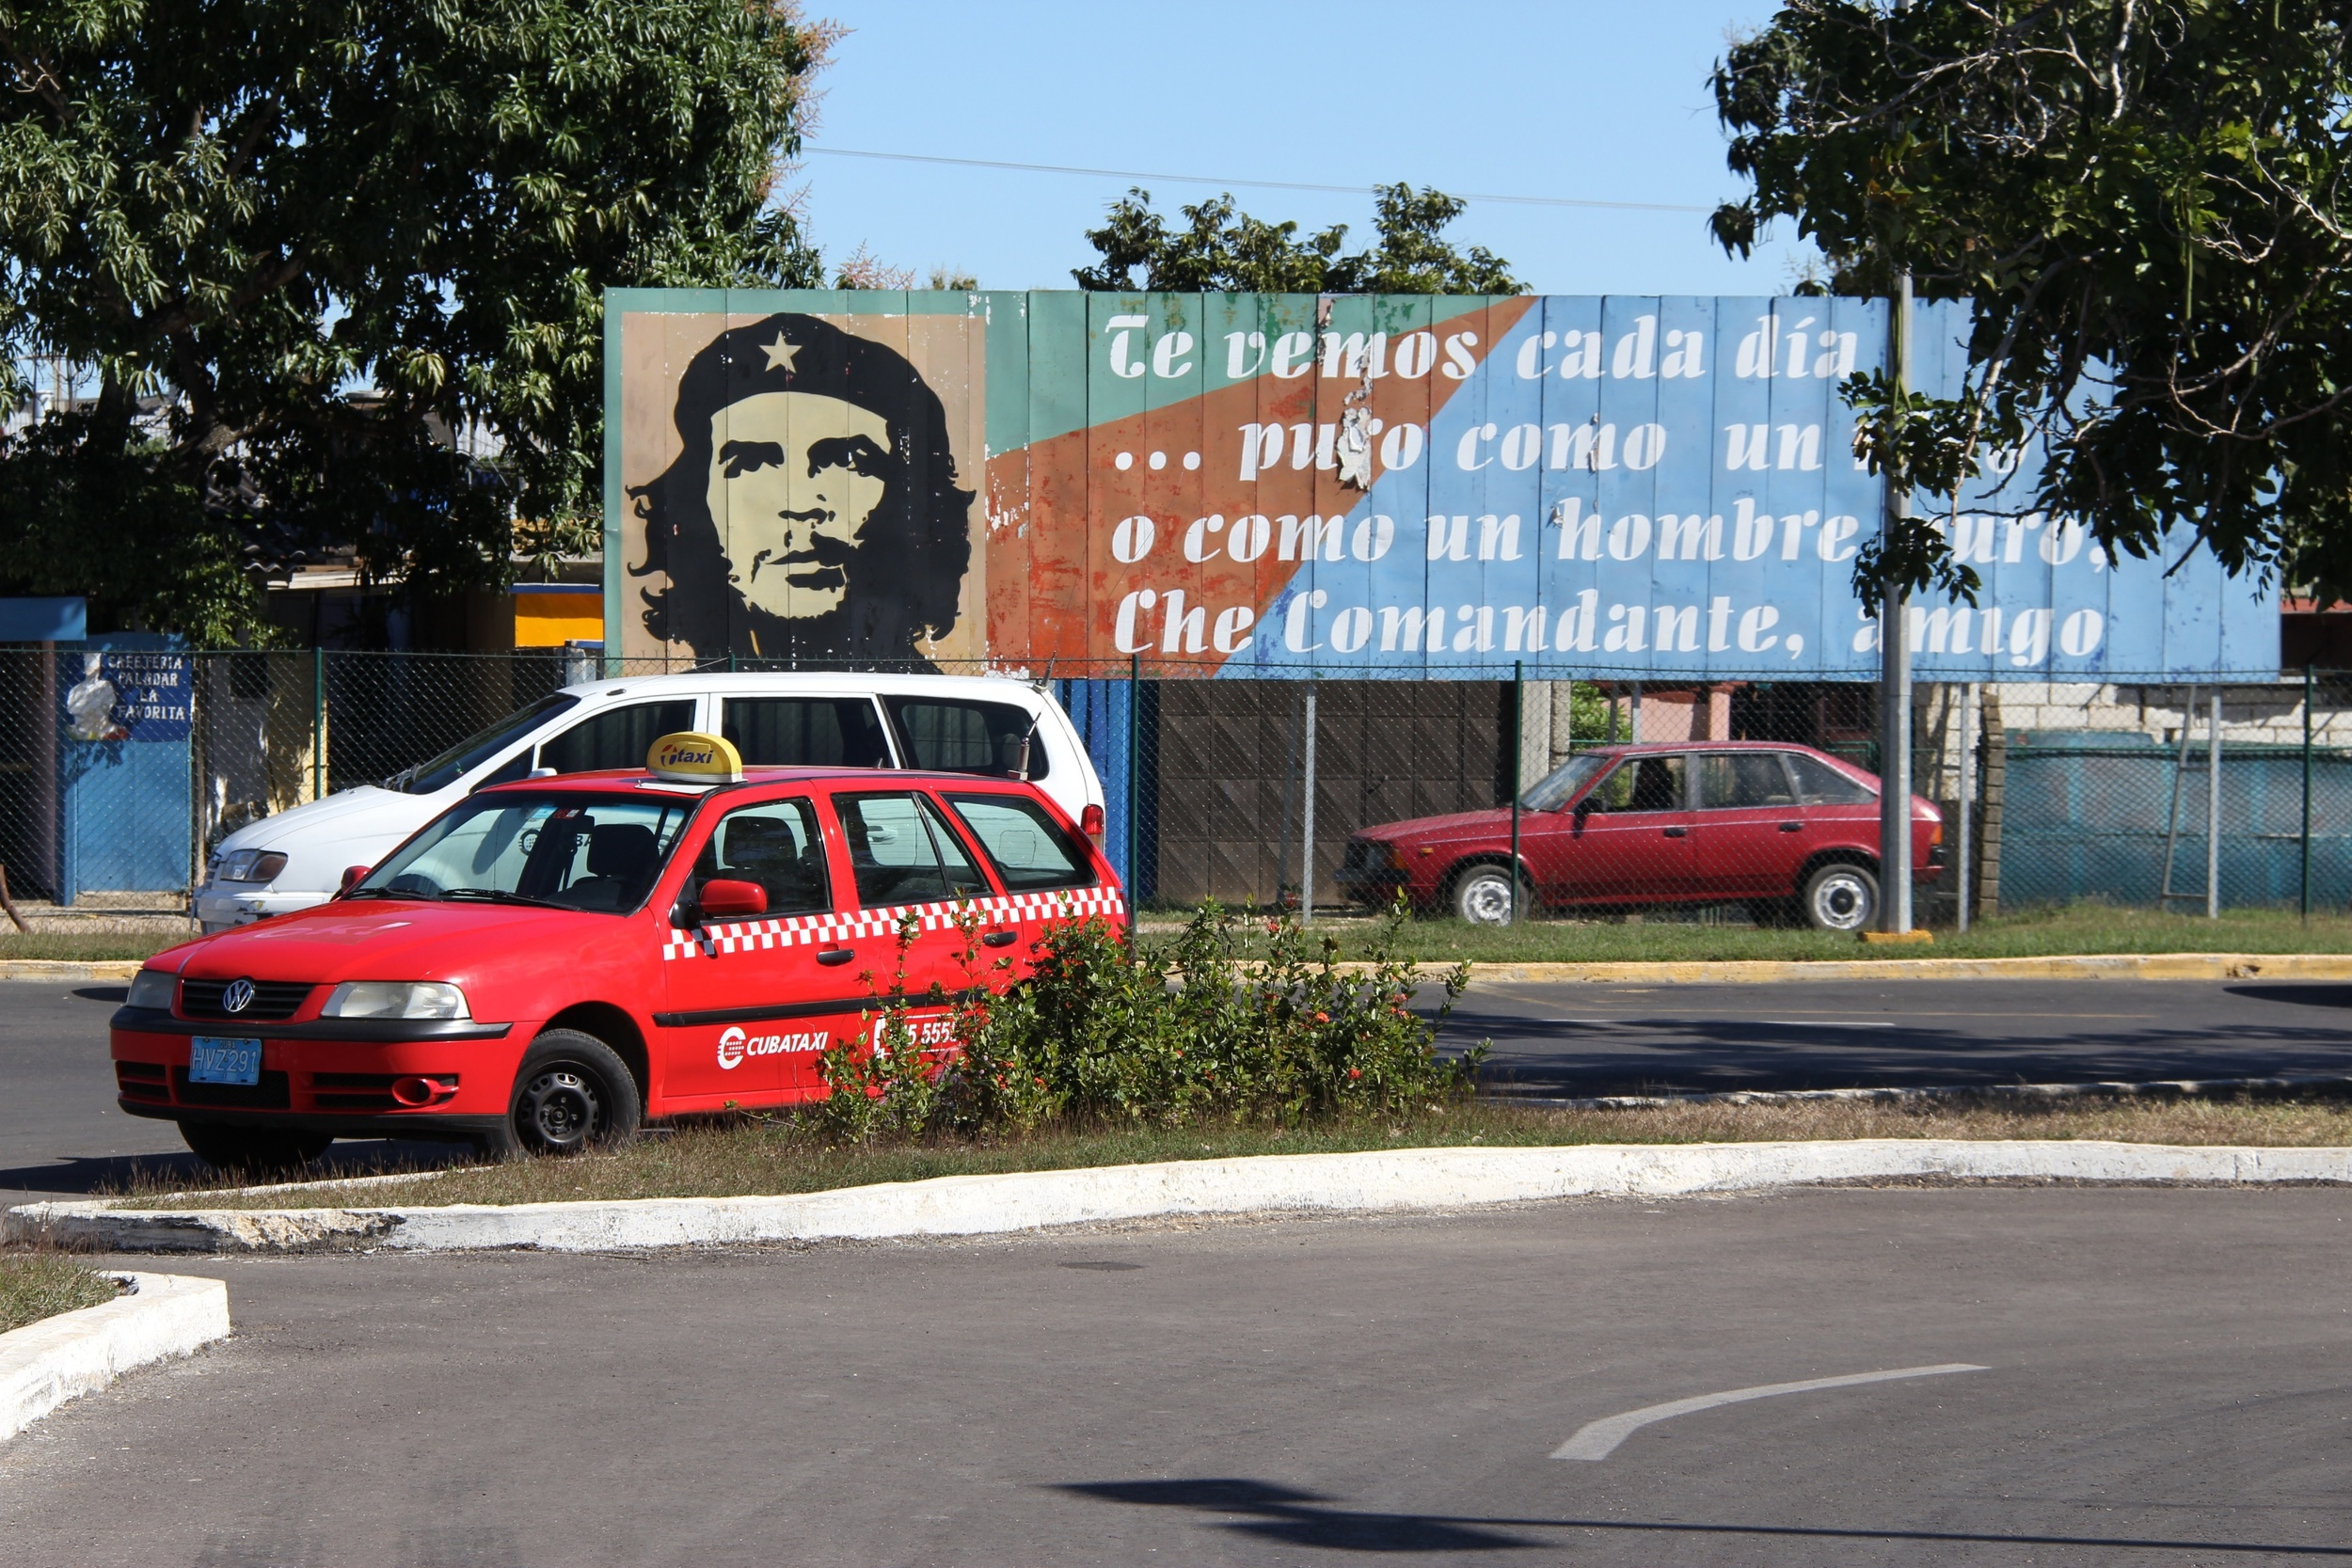 Cuba, outside Jose Marti airport.